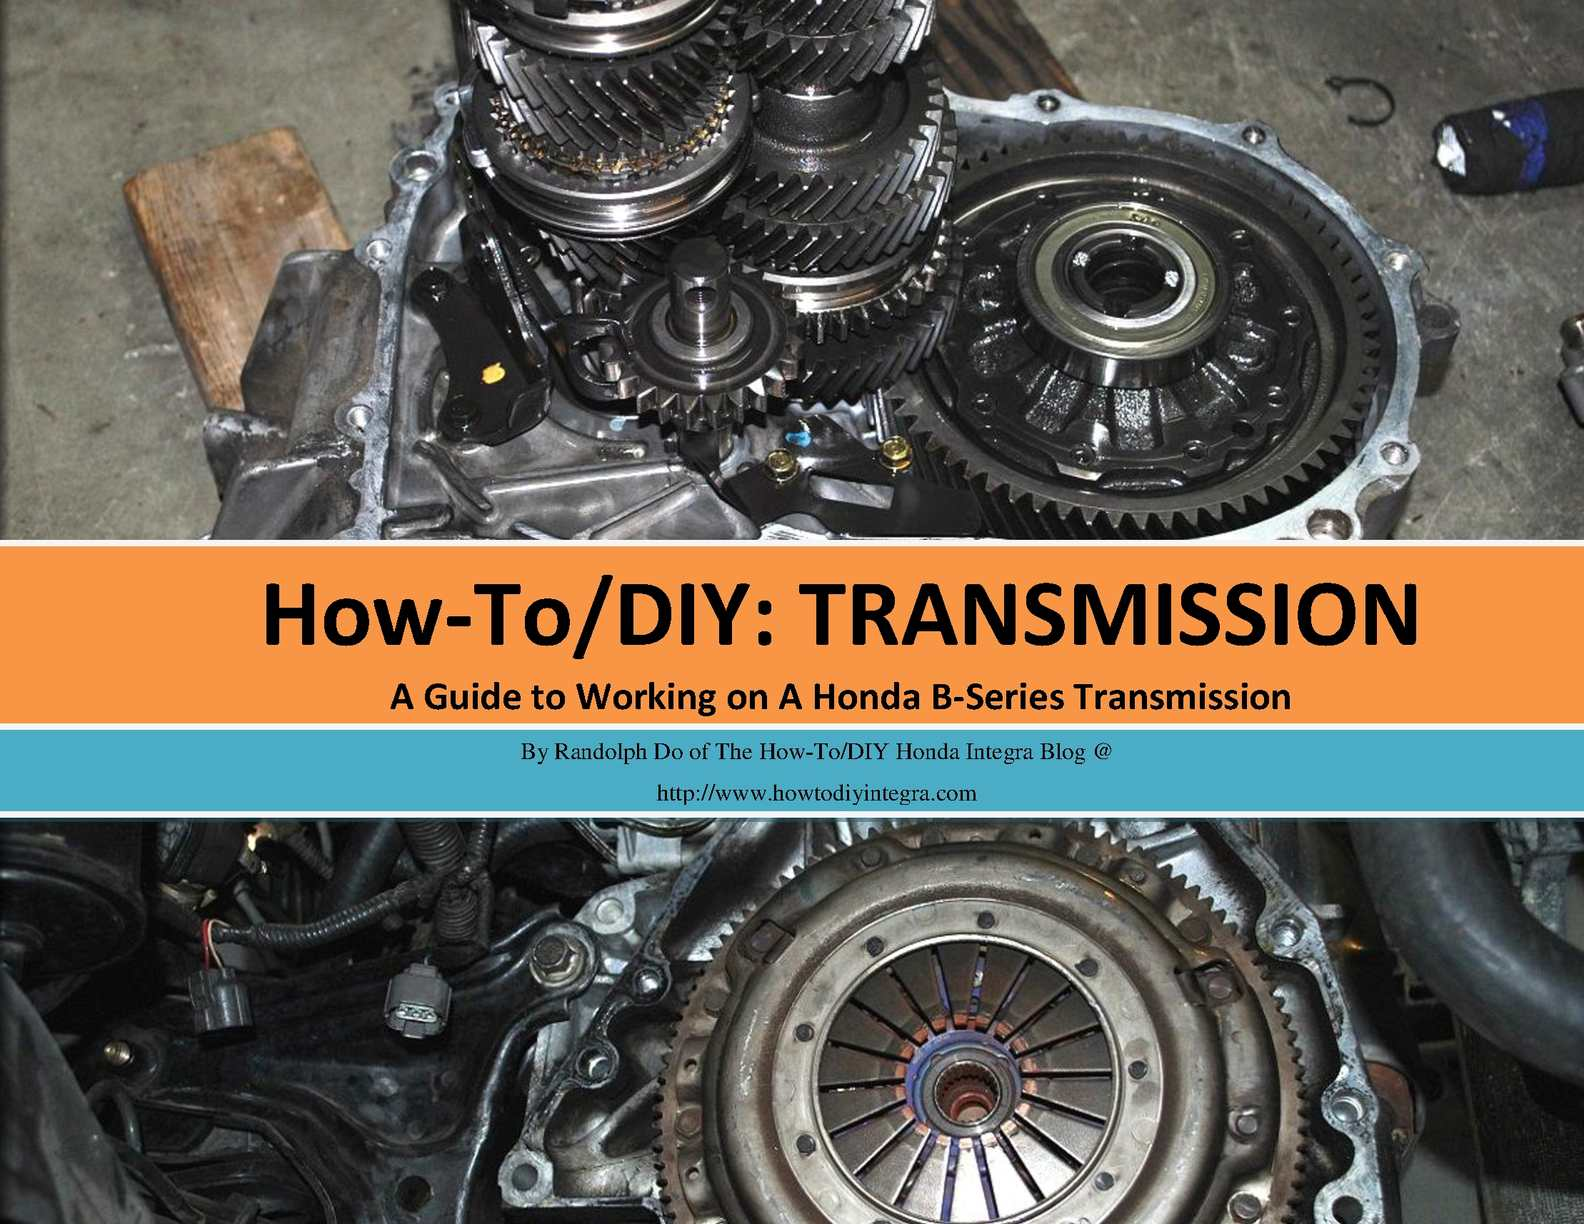 How-To/DIY Integra: Transmission - A Guide To Working On A Honda B Series Transmission